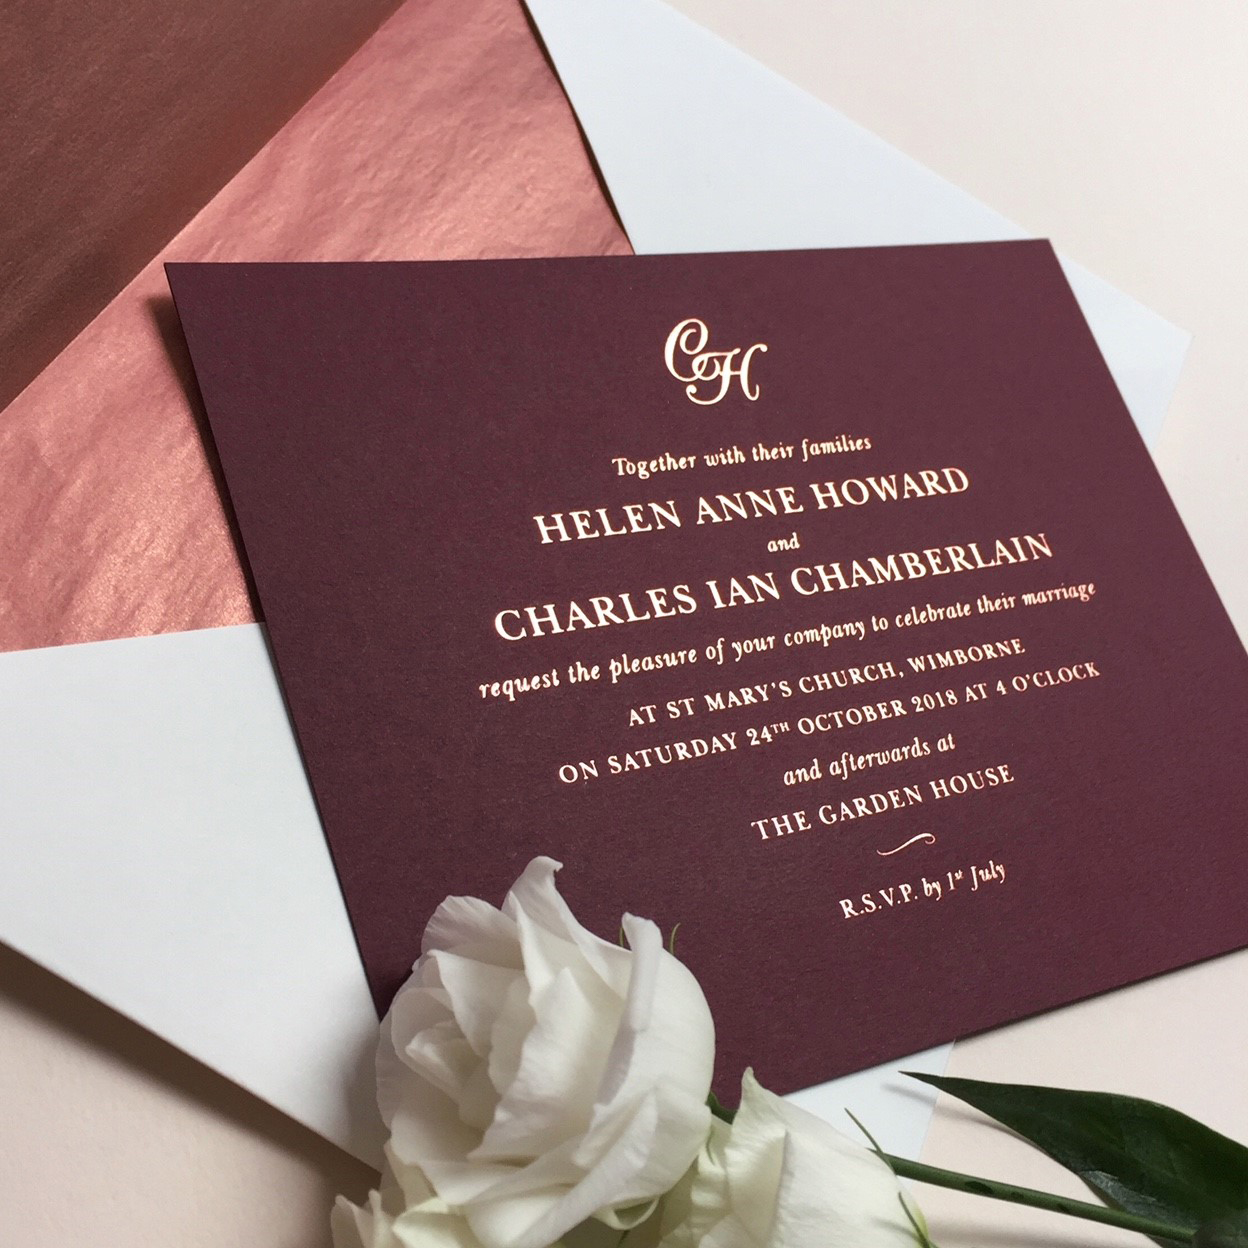 Helen Wedding Invitations